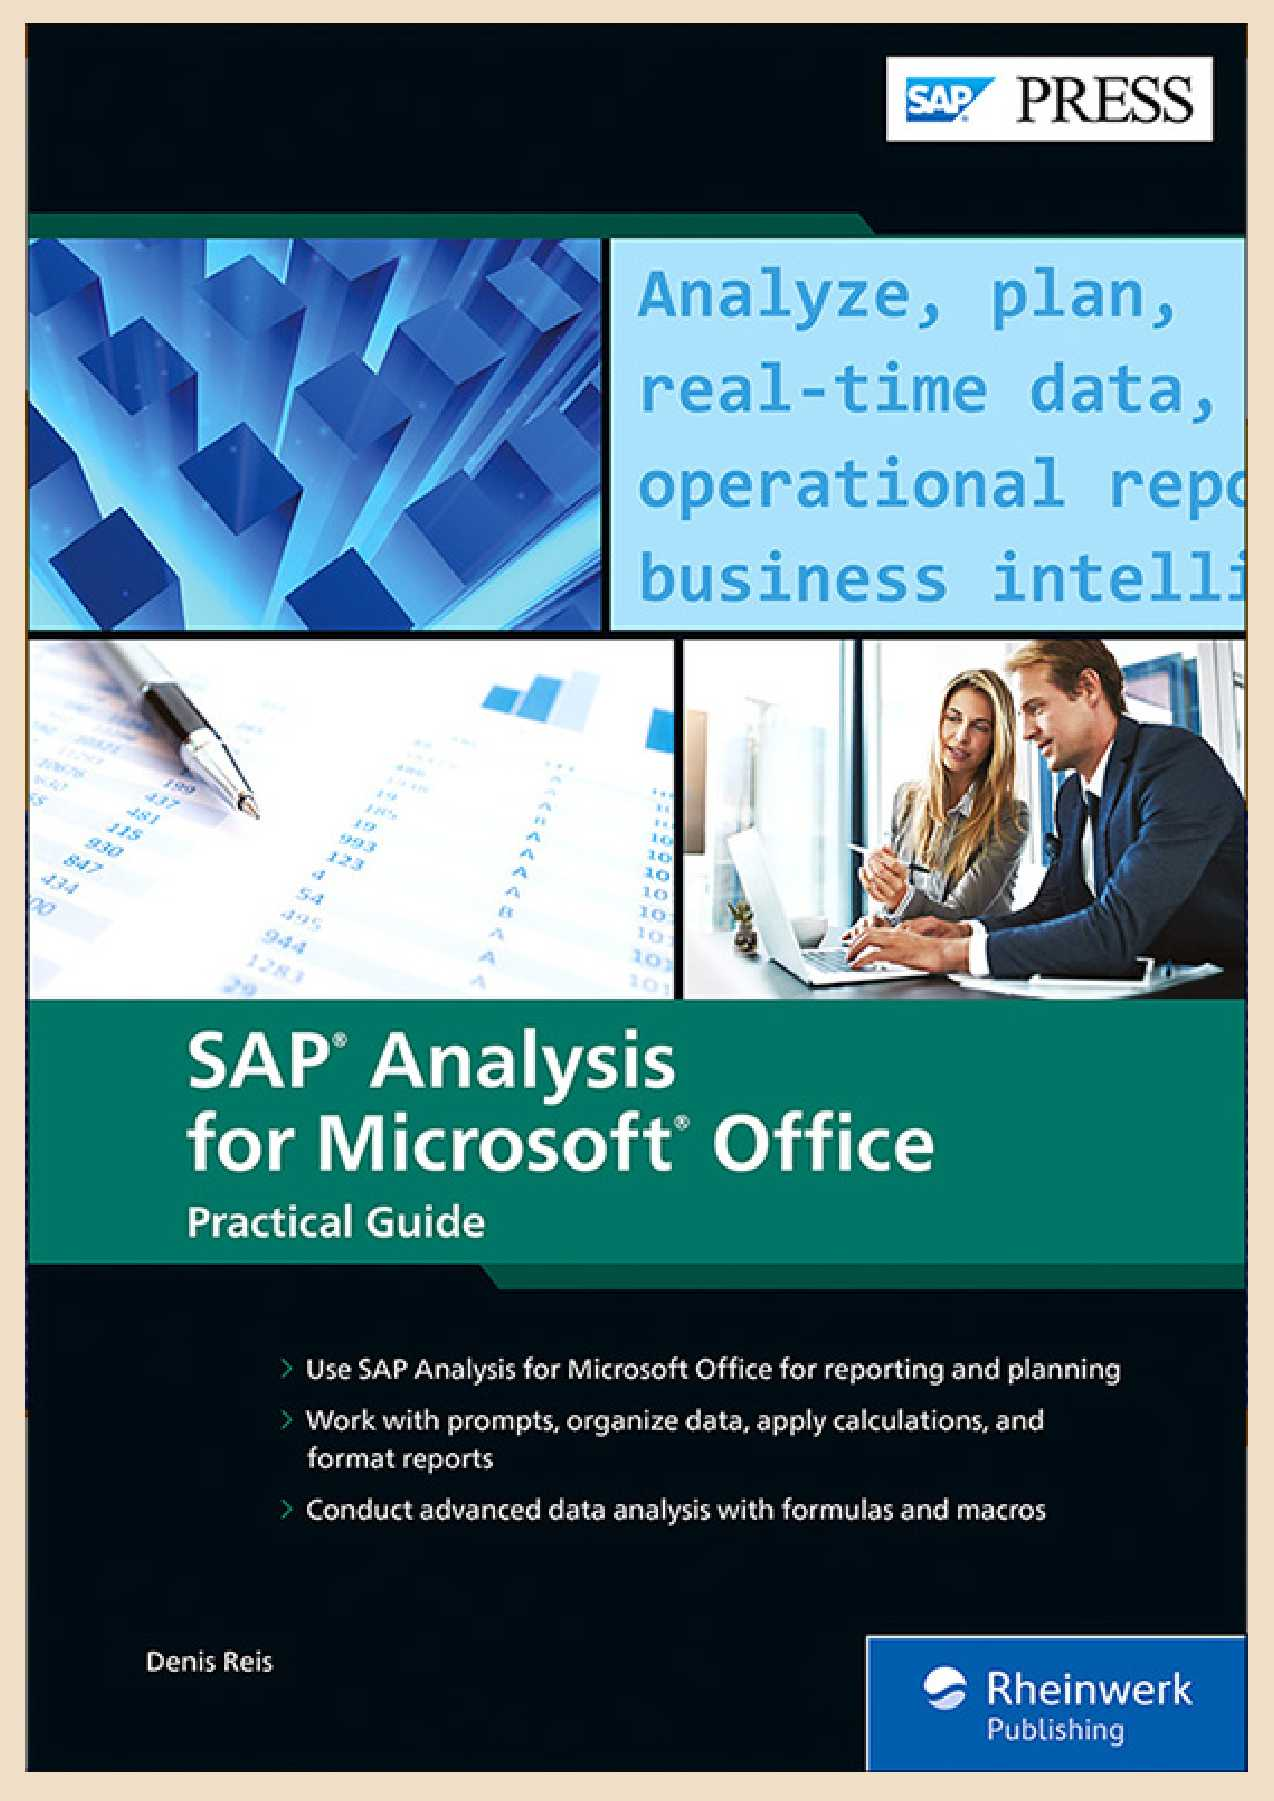 SAP Analysis for Microsoft Office: Practical Guide